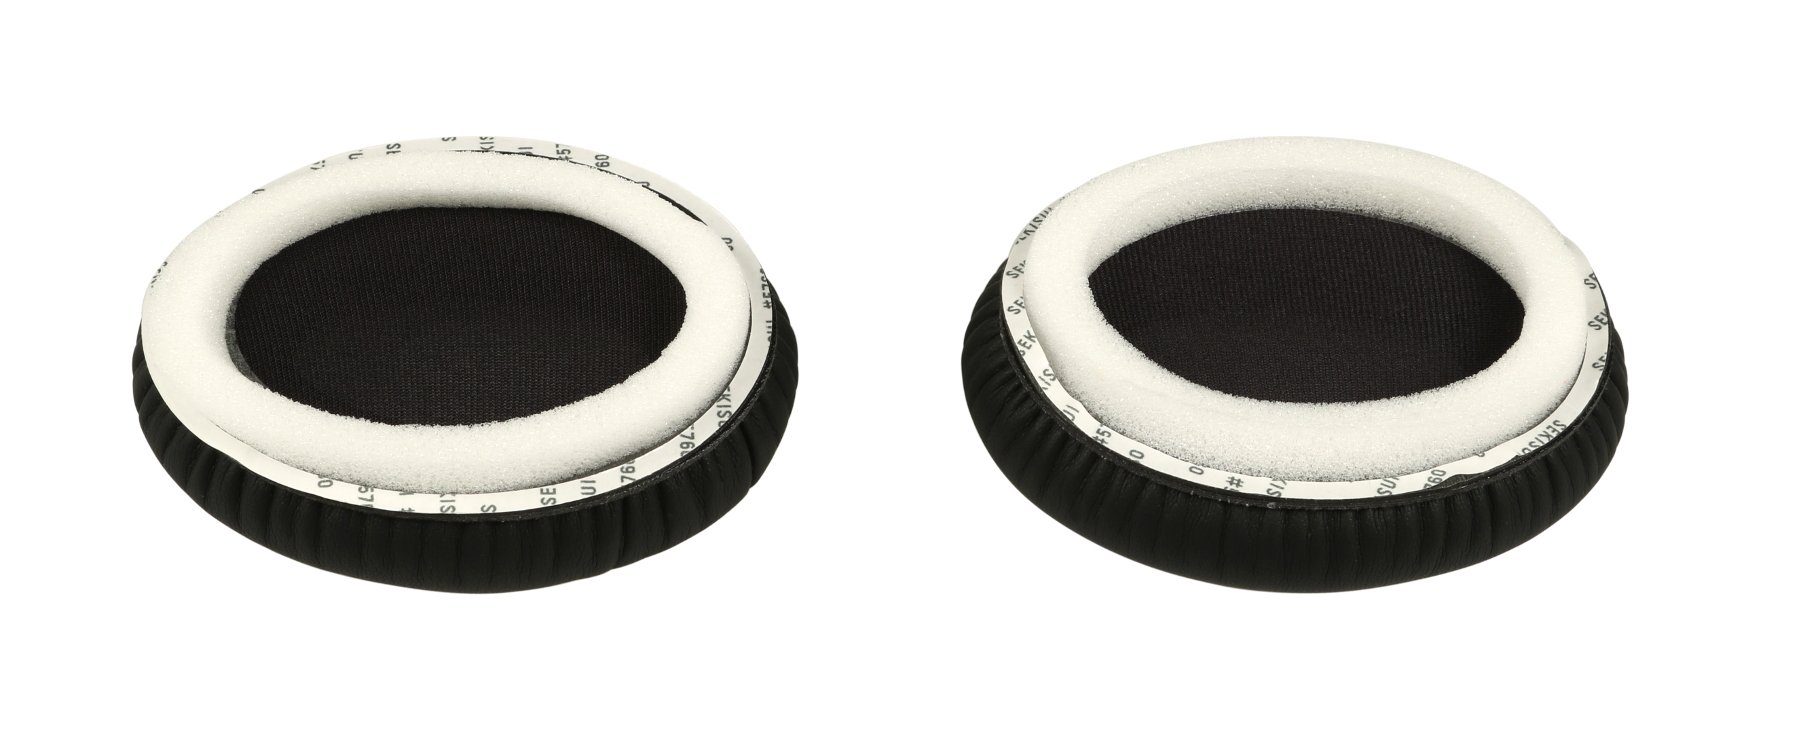 Earpad Kit for ATH-ANC7 and ATH-ANC7B